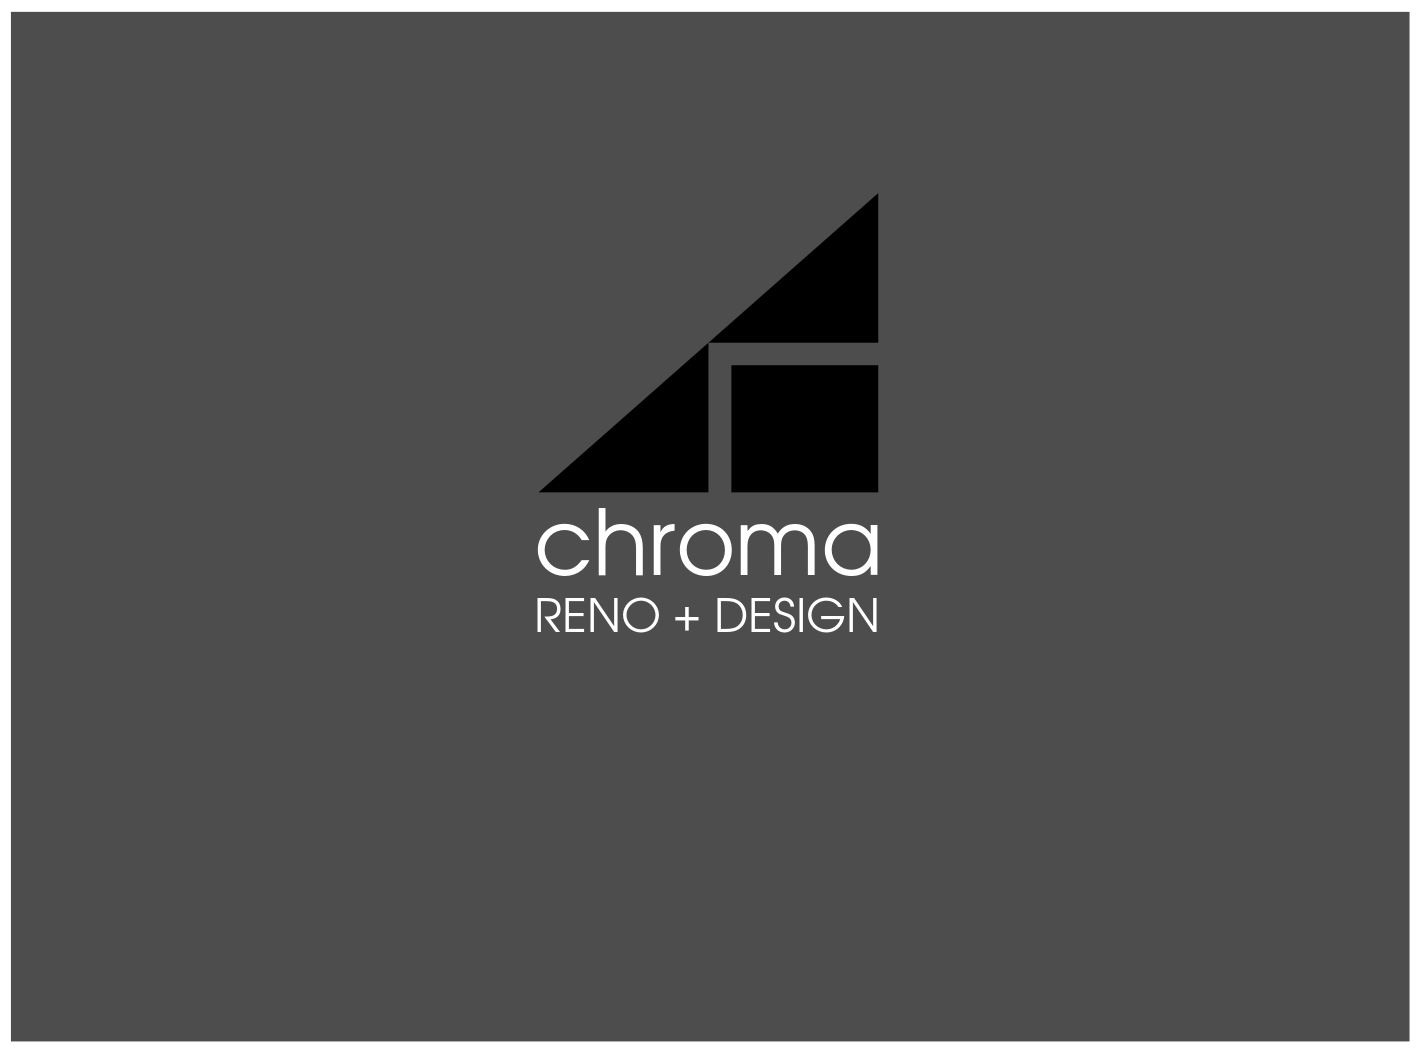 Logo Design by JaroslavProcka - Entry No. 232 in the Logo Design Contest Inspiring Logo Design for Chroma Reno+Design.